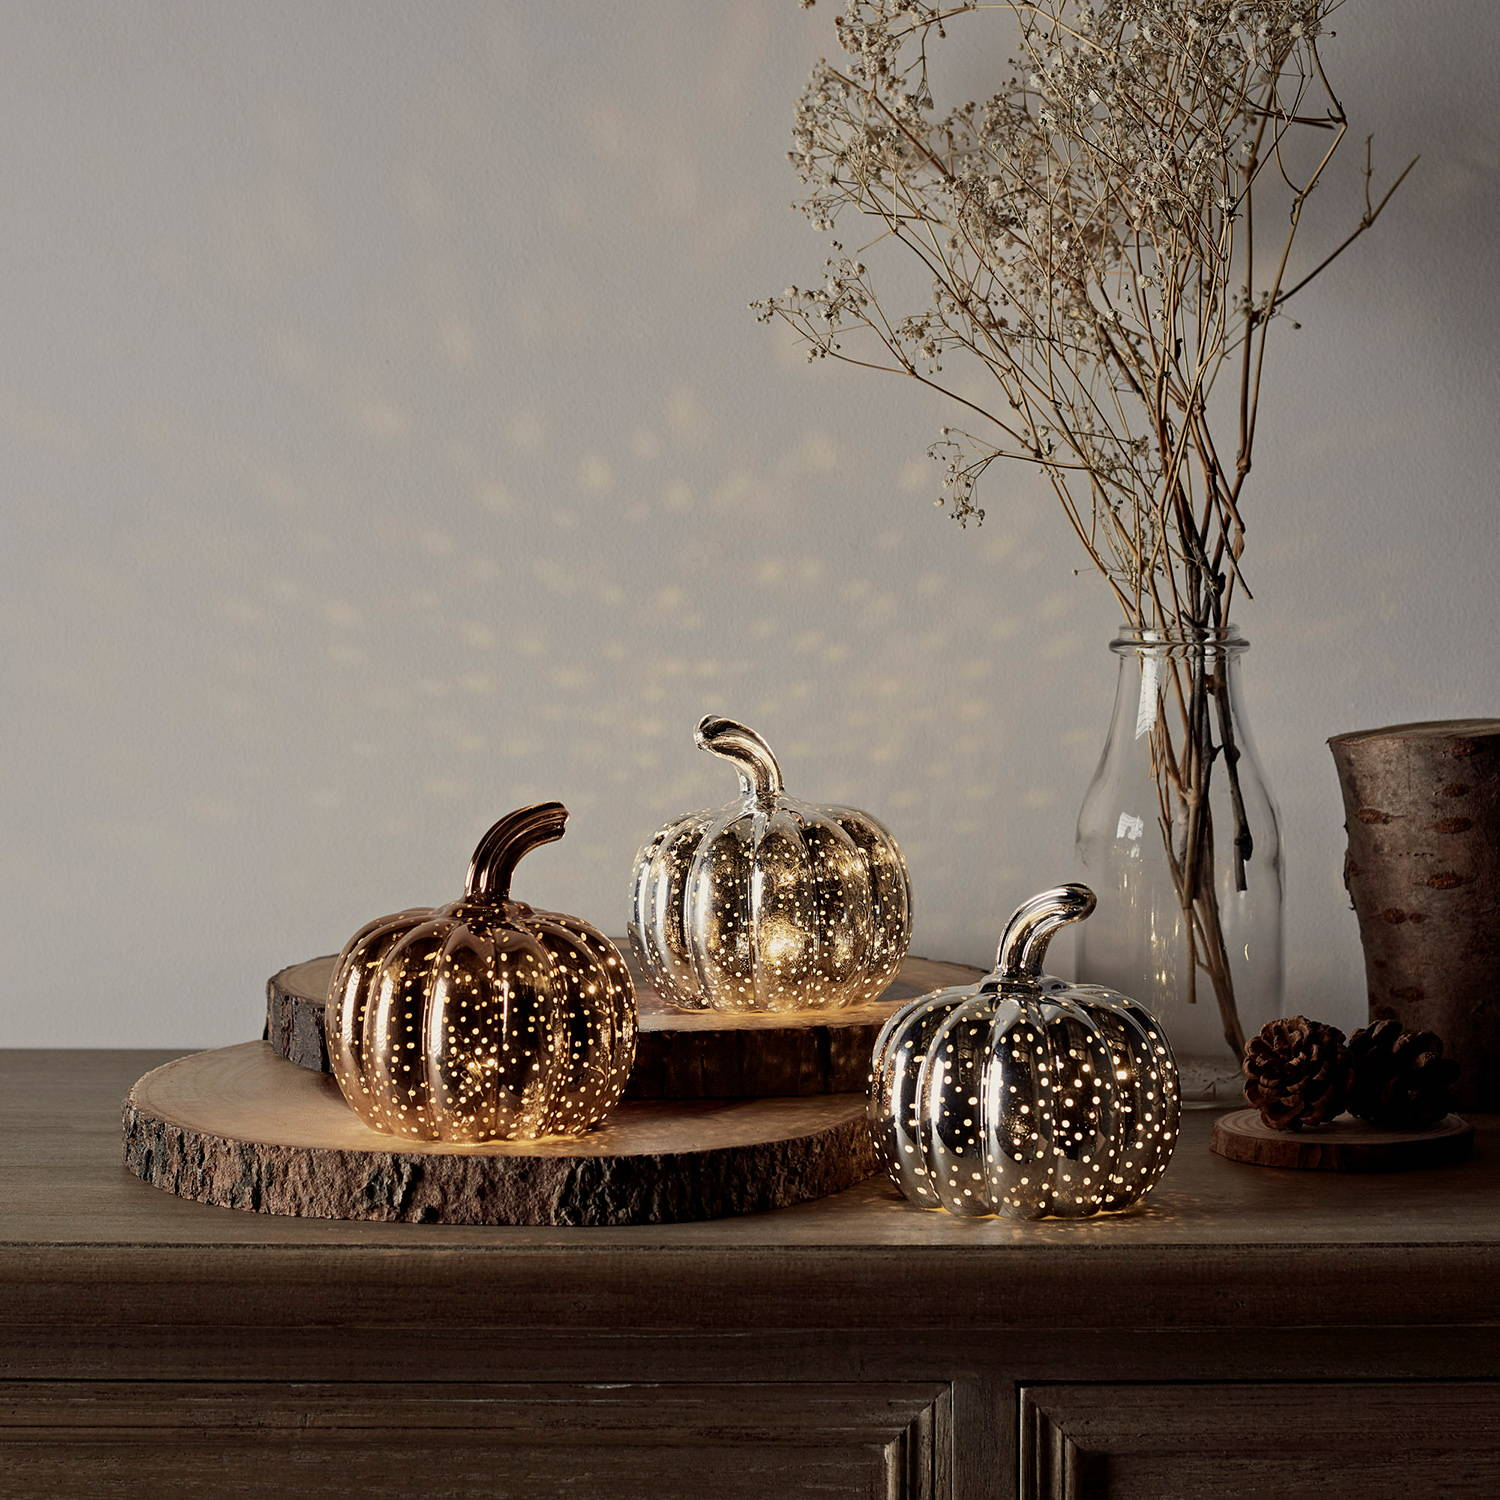 Mottled pumpkin trio illuminated on table styled at different heights